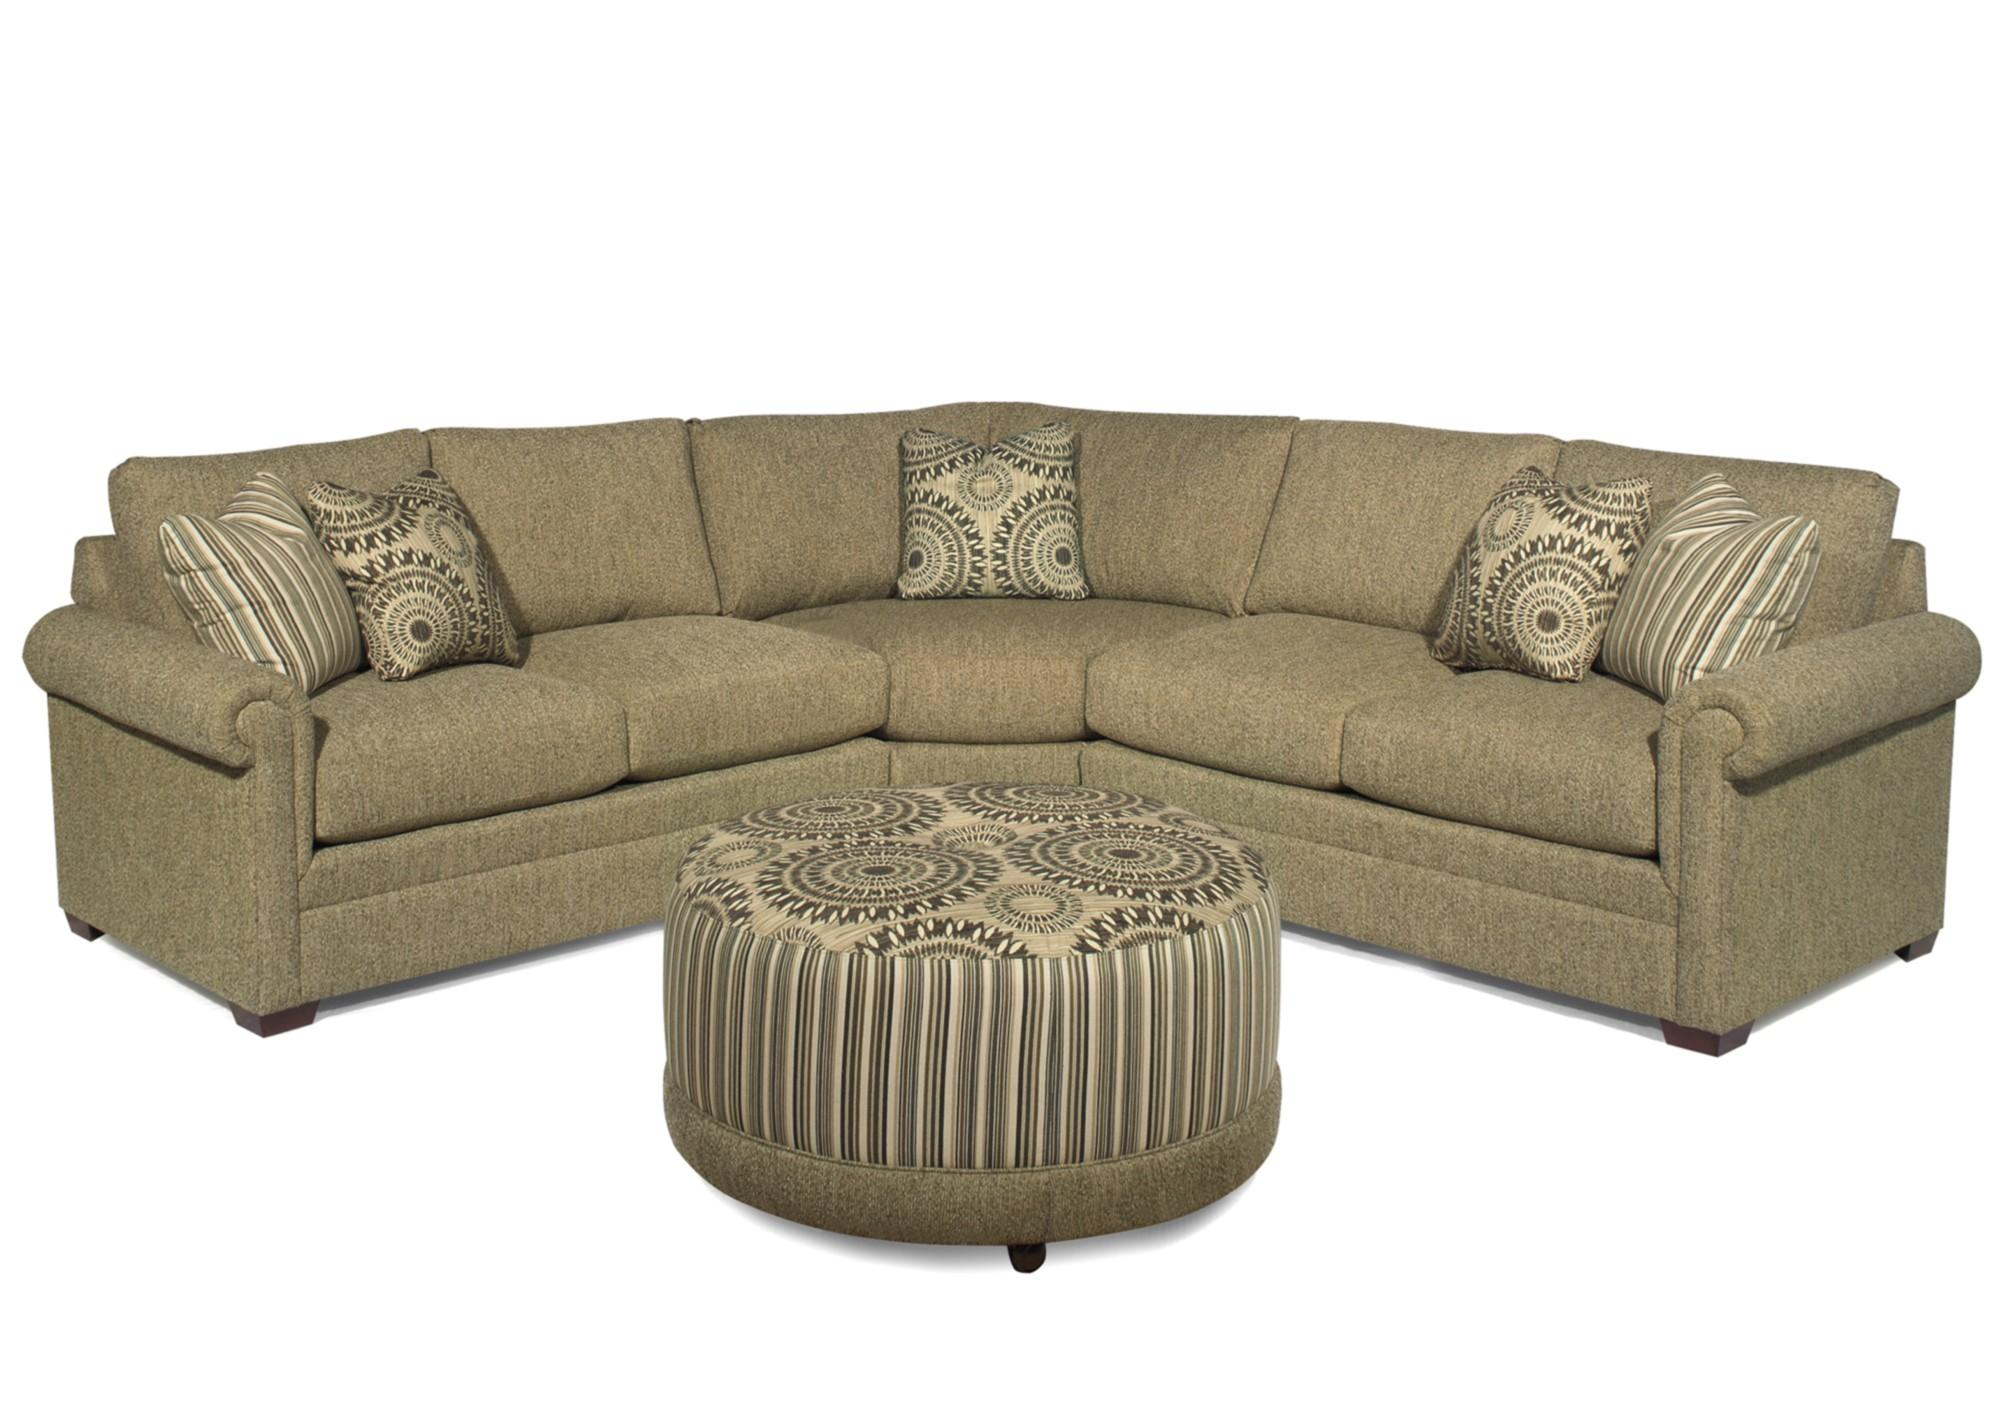 Customizable 3 Piece Sectional With Pie Wedge By